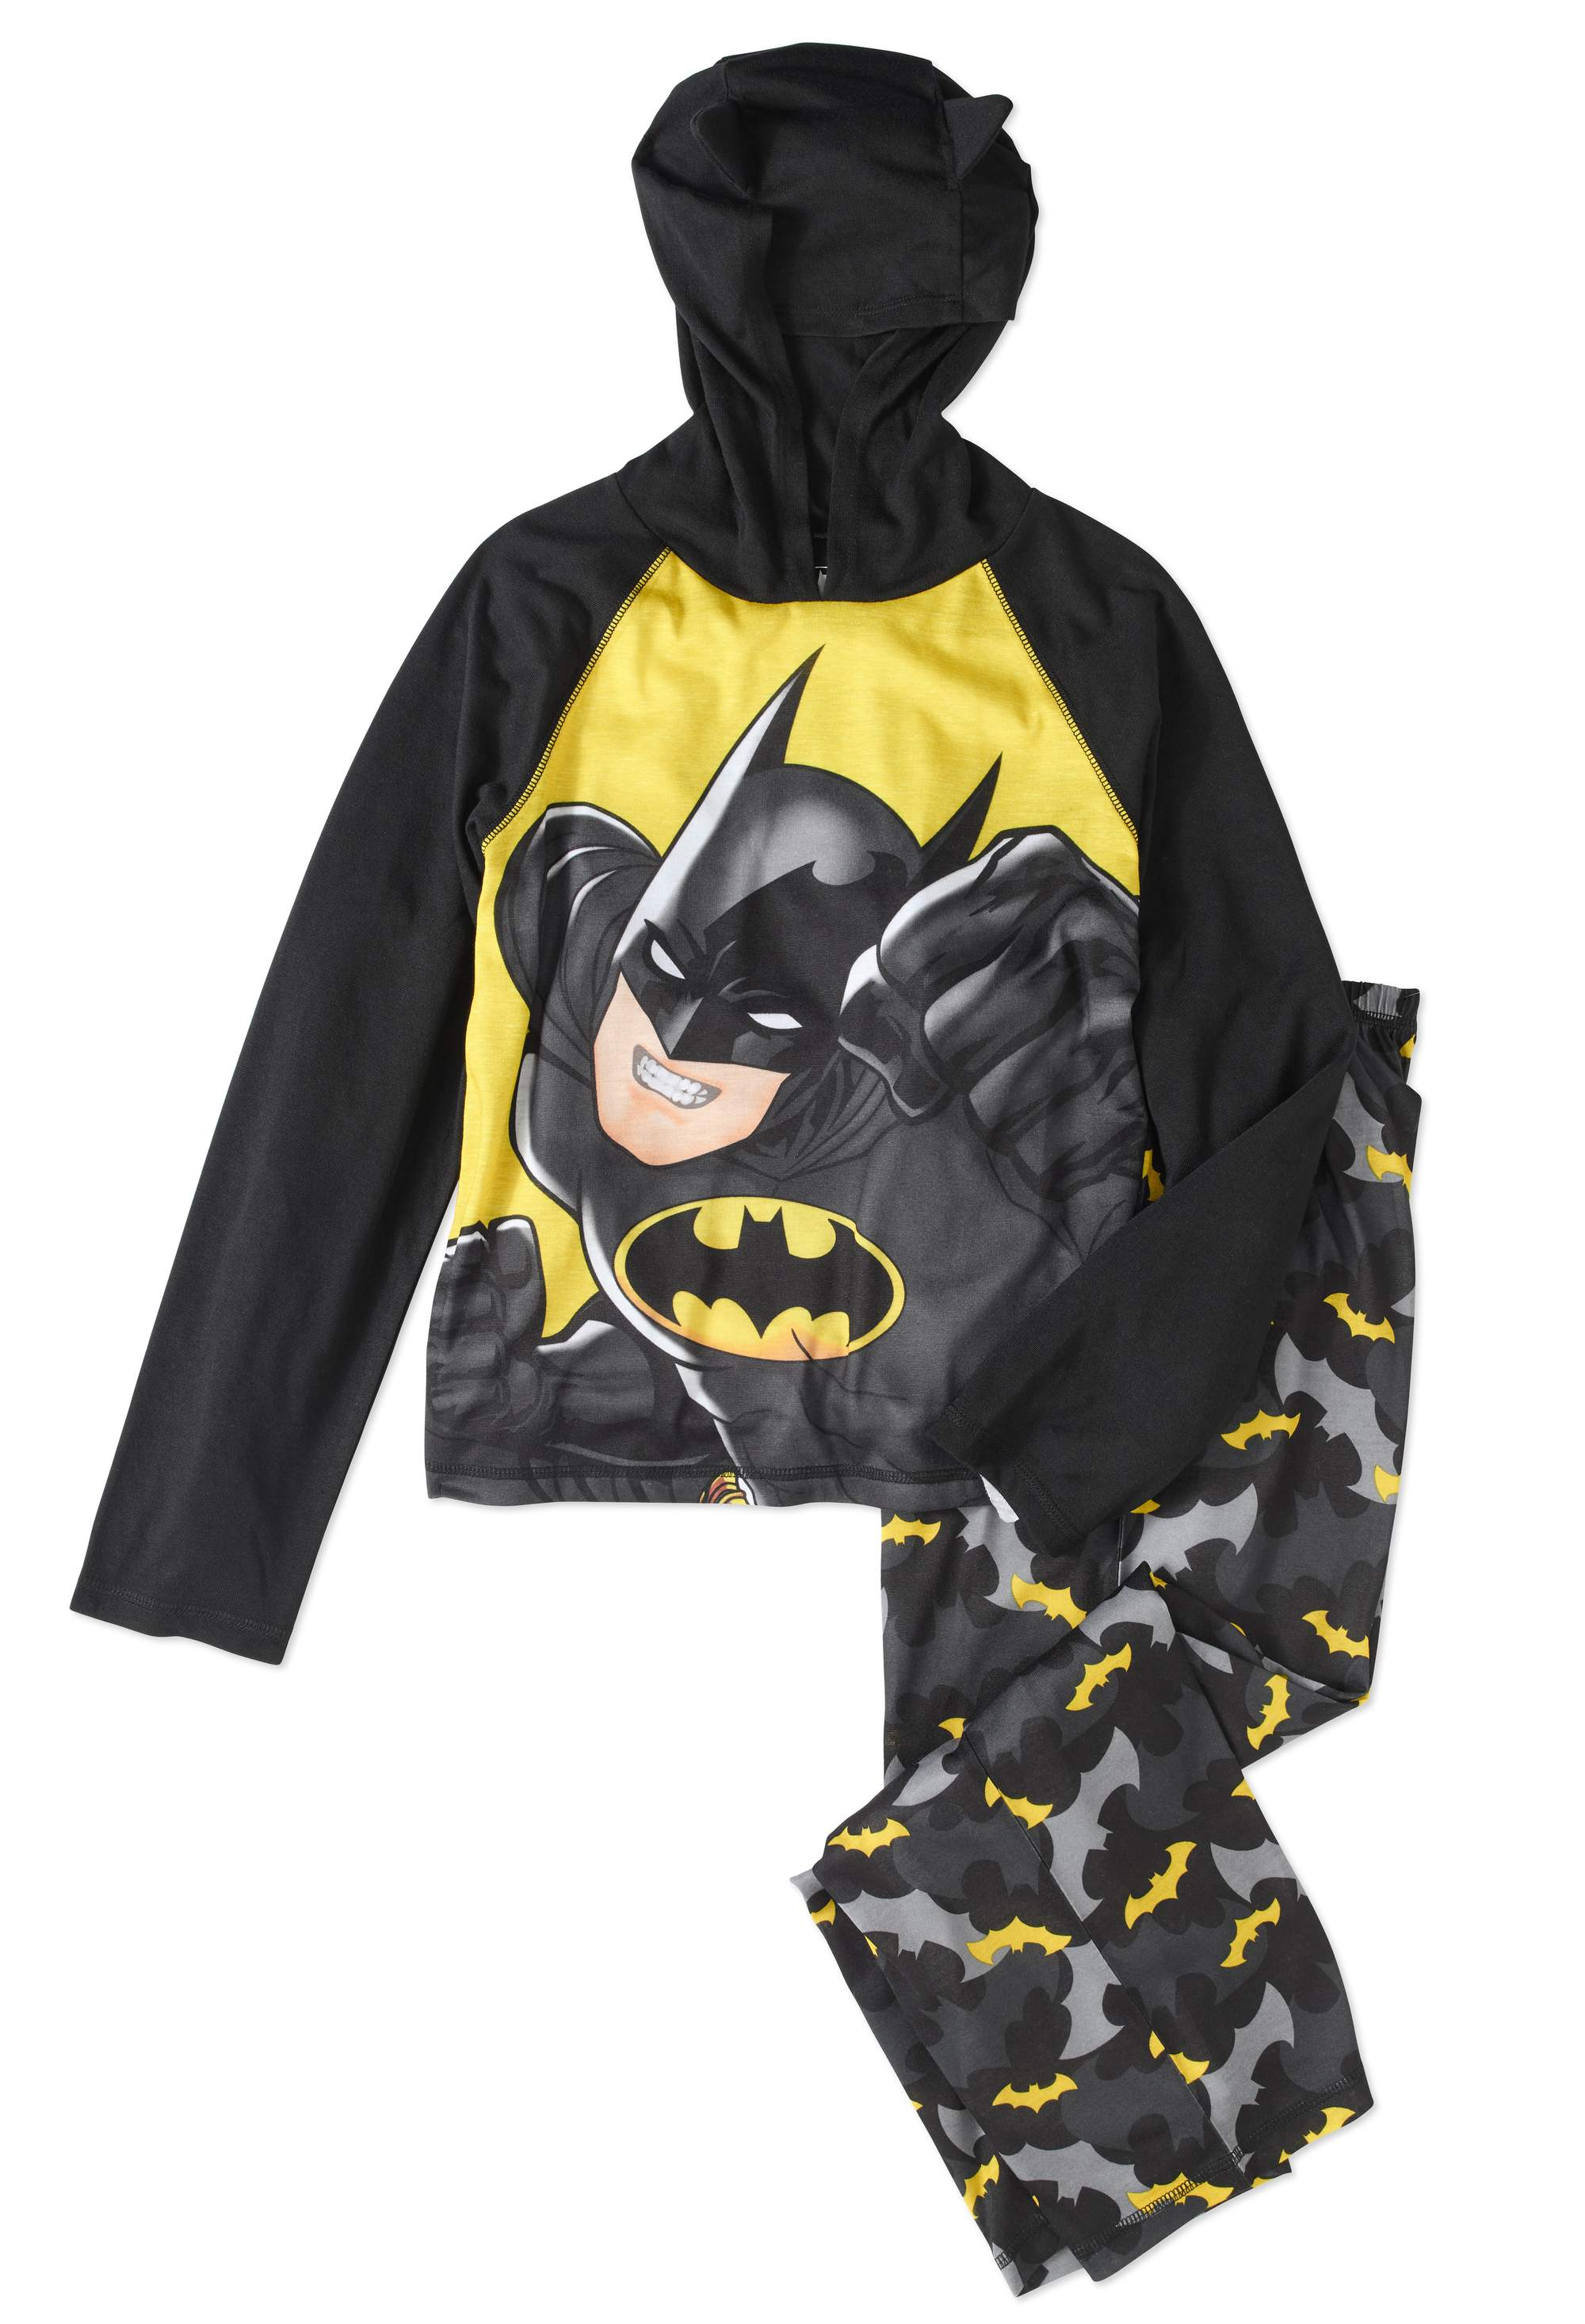 Batman Boys' 2pc Hooded Pajama Set by Komar Kids